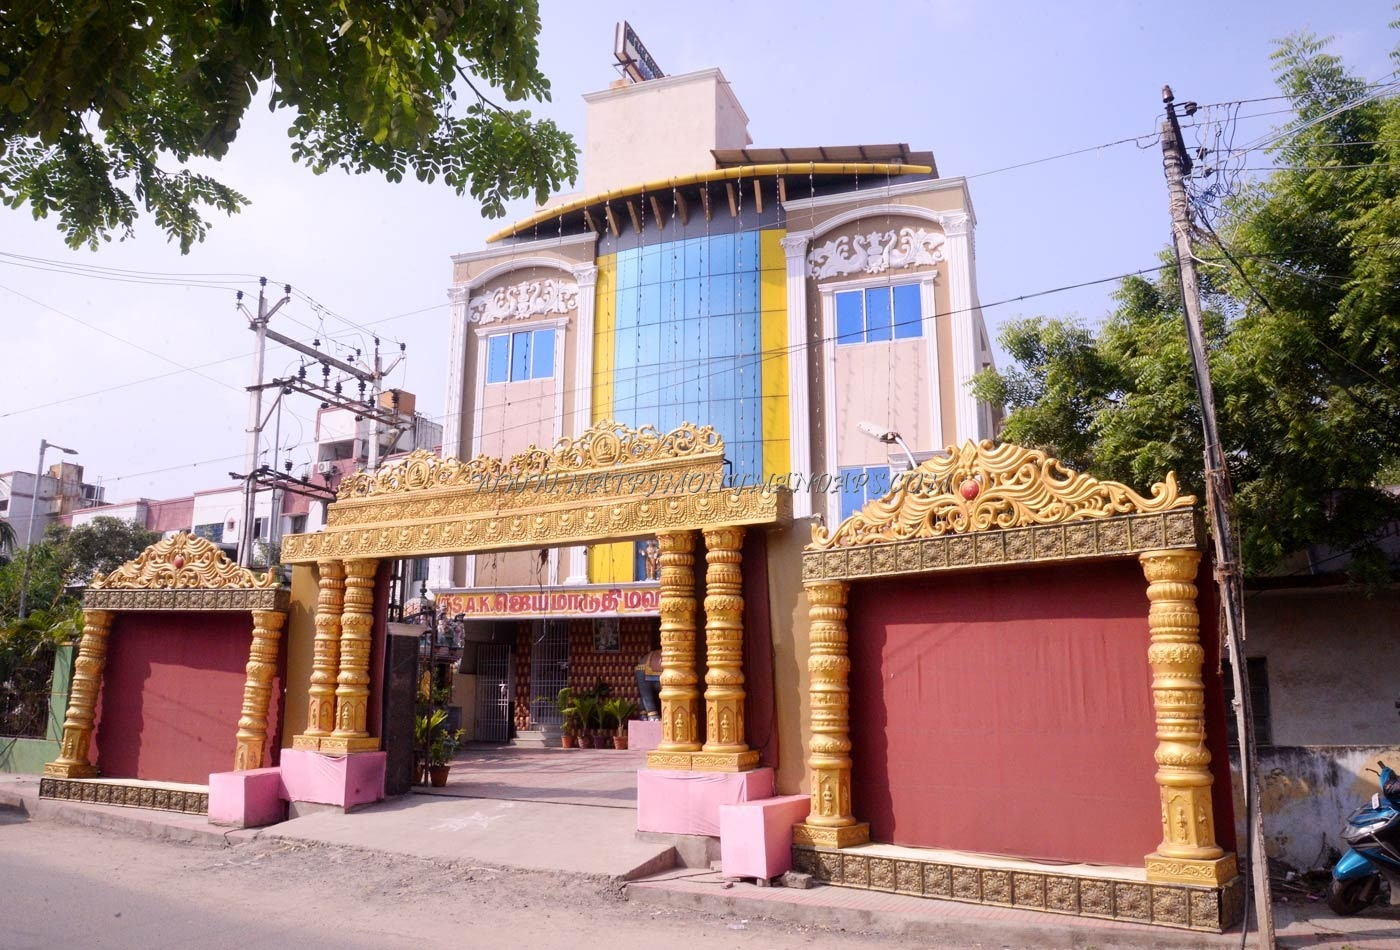 Find the availability of the Sri SAK Jai Maruthi Mahal (A/C) in Moulivakkam, Chennai and avail special offers